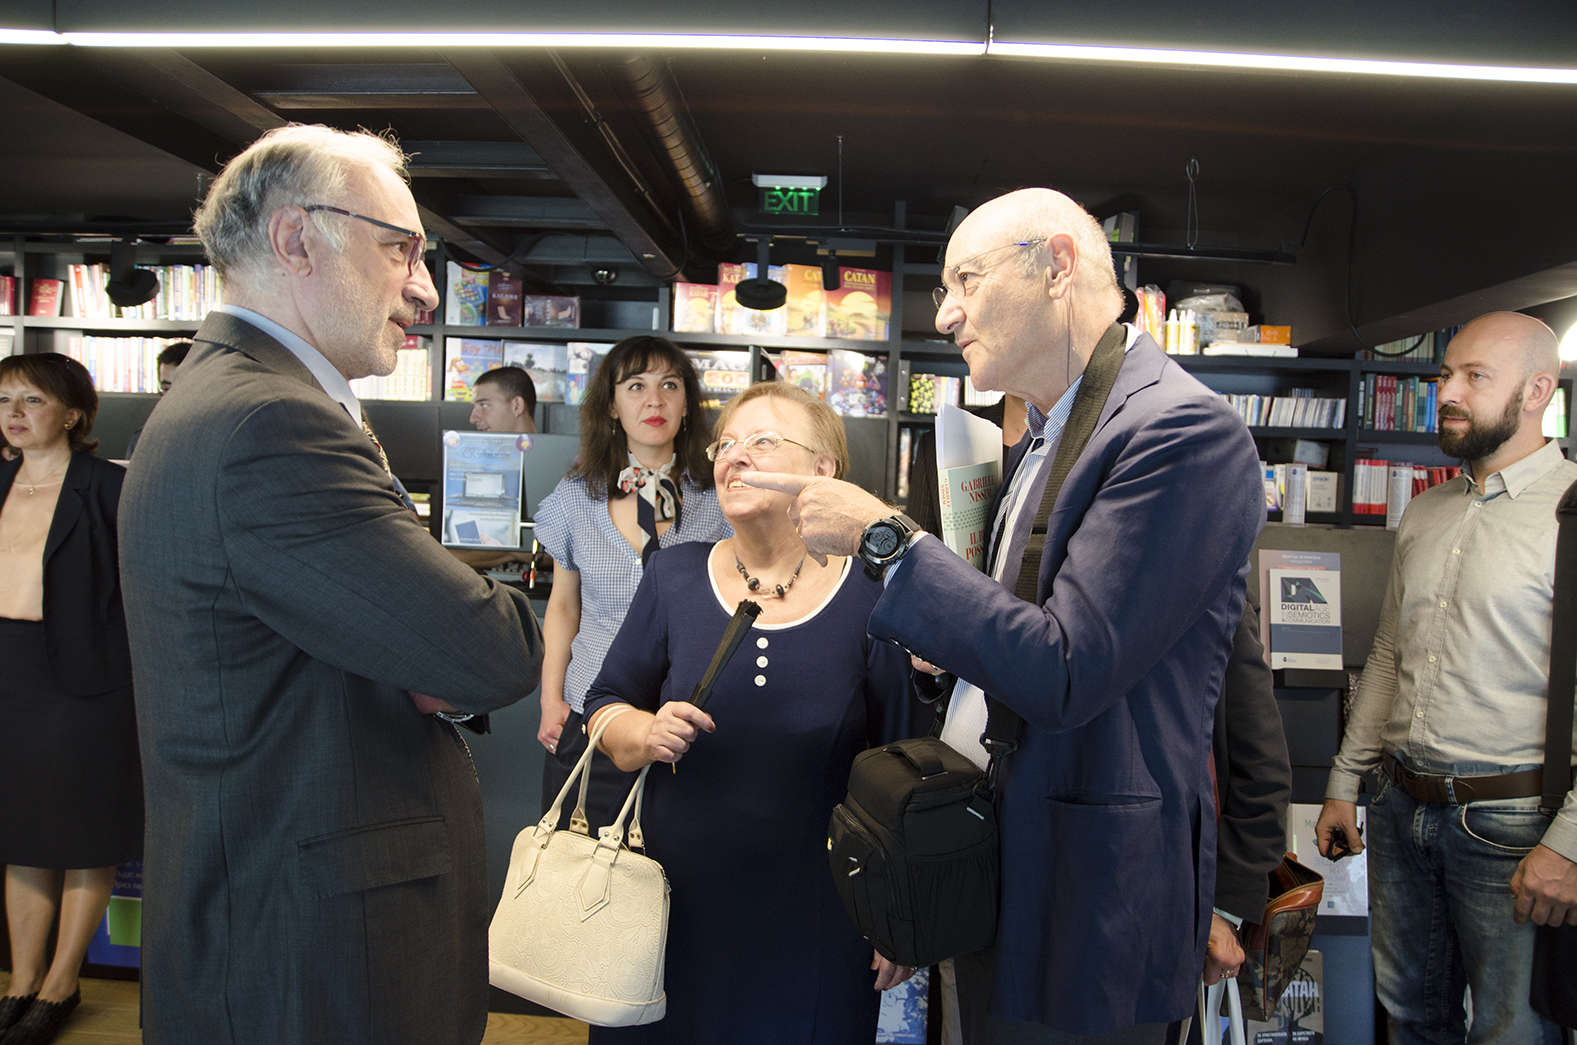 Vesselin Metodiev, historian; Neli Radanova, editor of the new edition of the book; Gabriele Nissim, writer and journalist